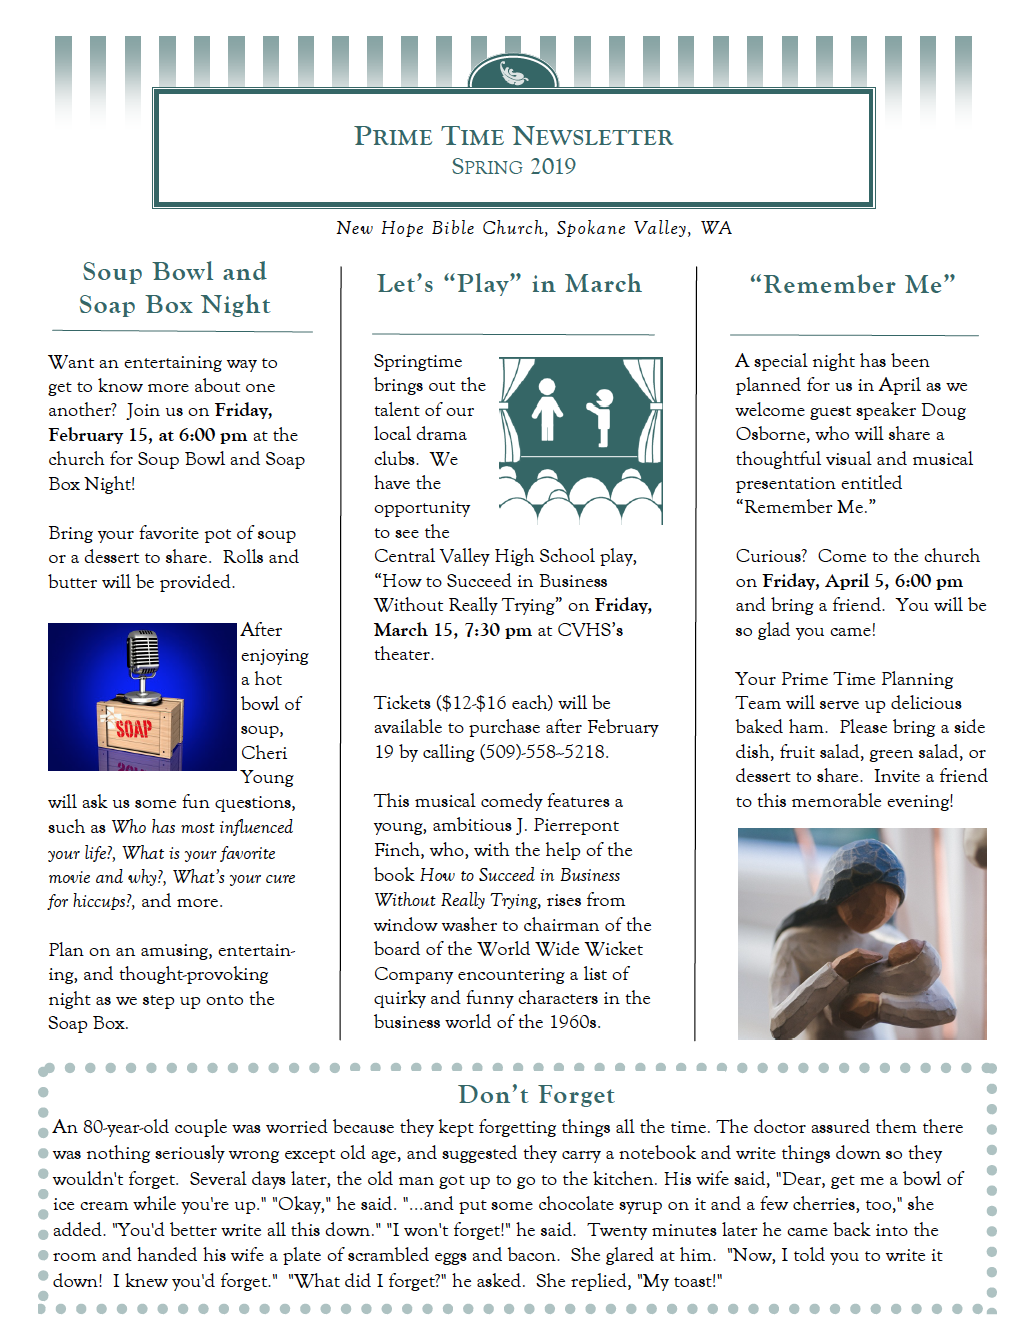 Spring 2019 Newsletter (click to view full version)